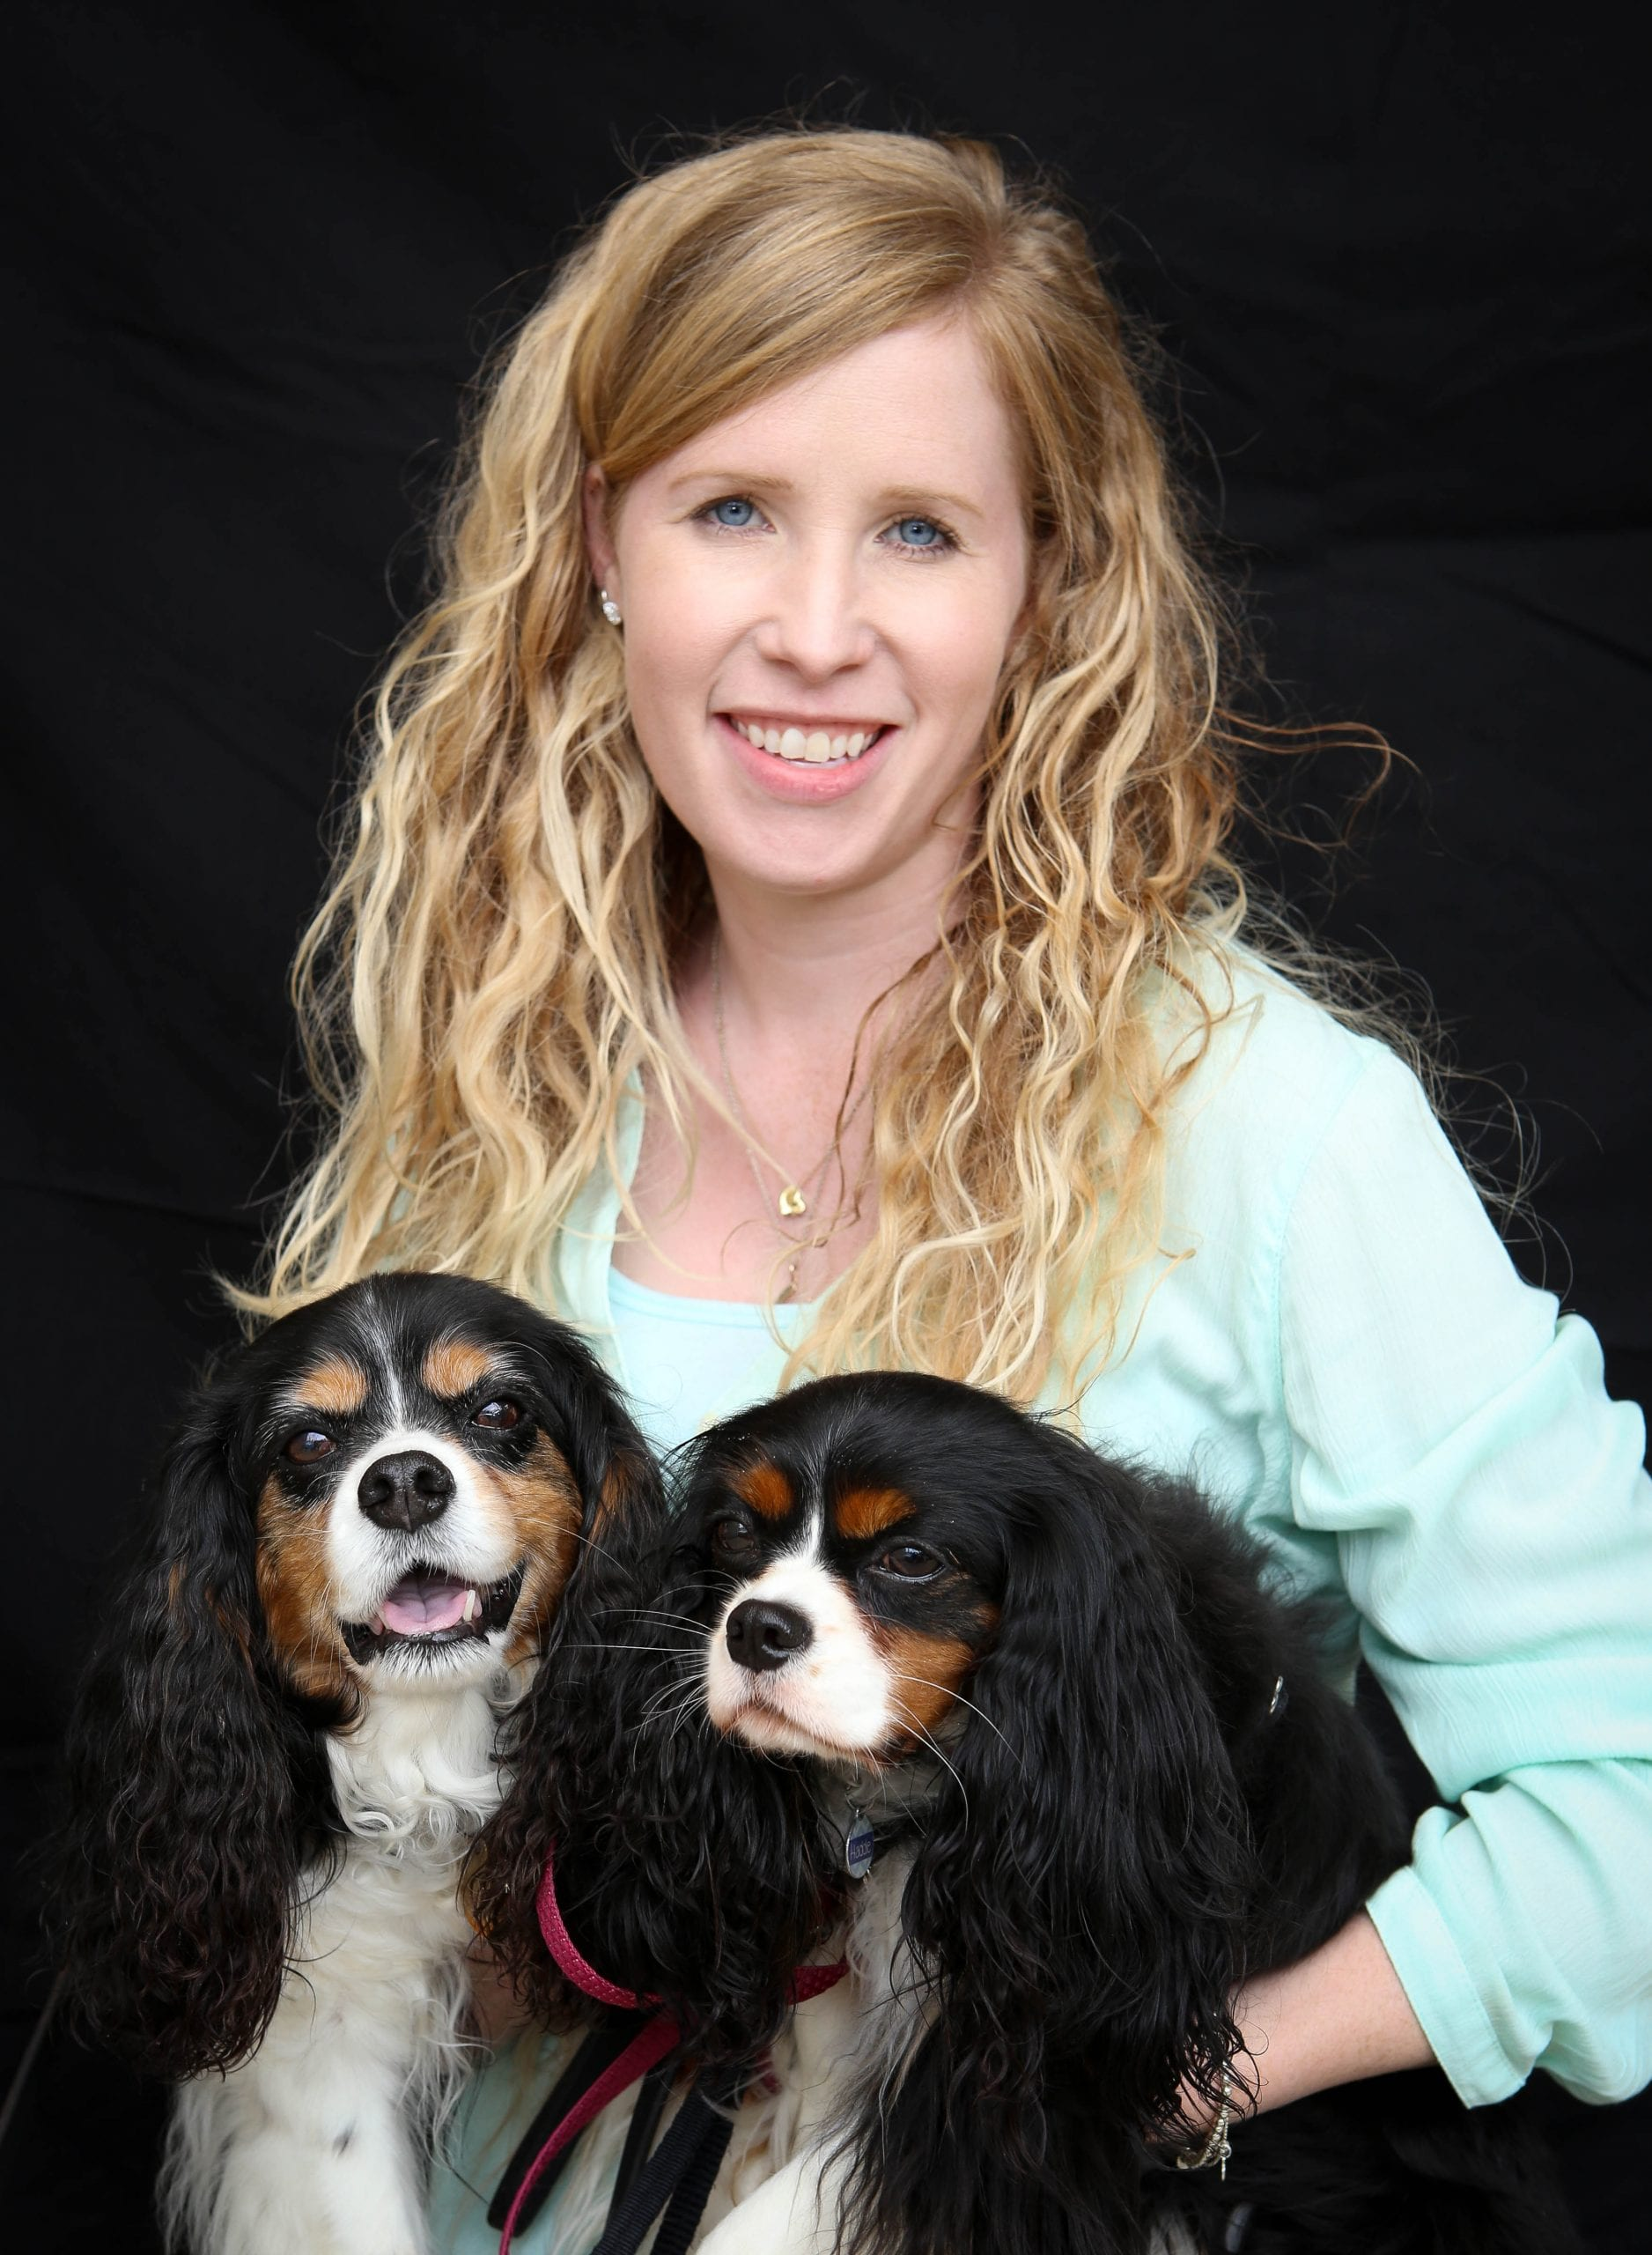 Dr. Kerry Ryan – Attending Veterinarian and Animal Care Manager